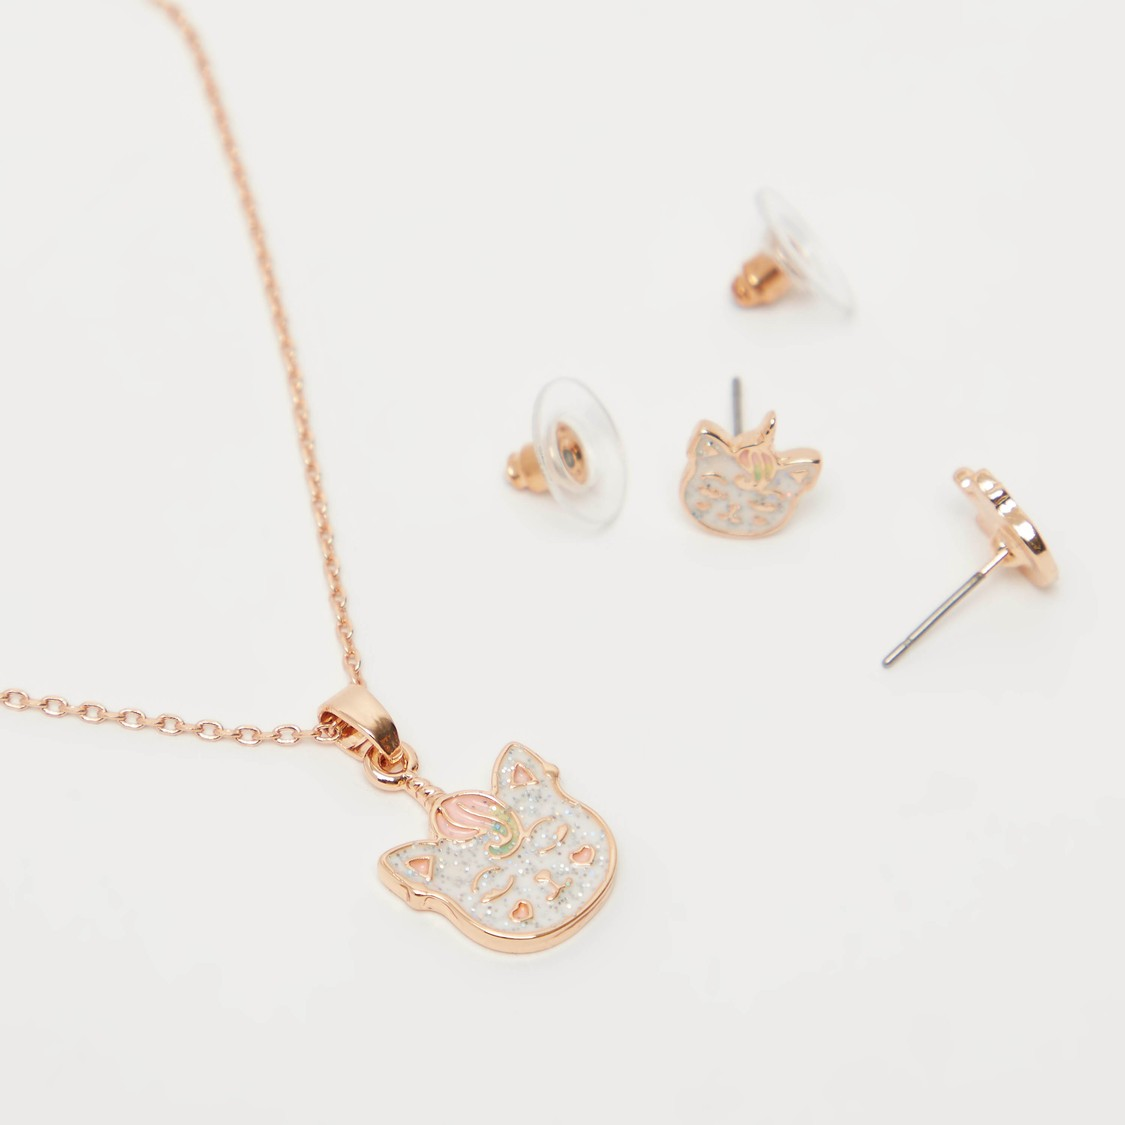 Caticorn Applique Detail Pendant Necklace and Earrings Set